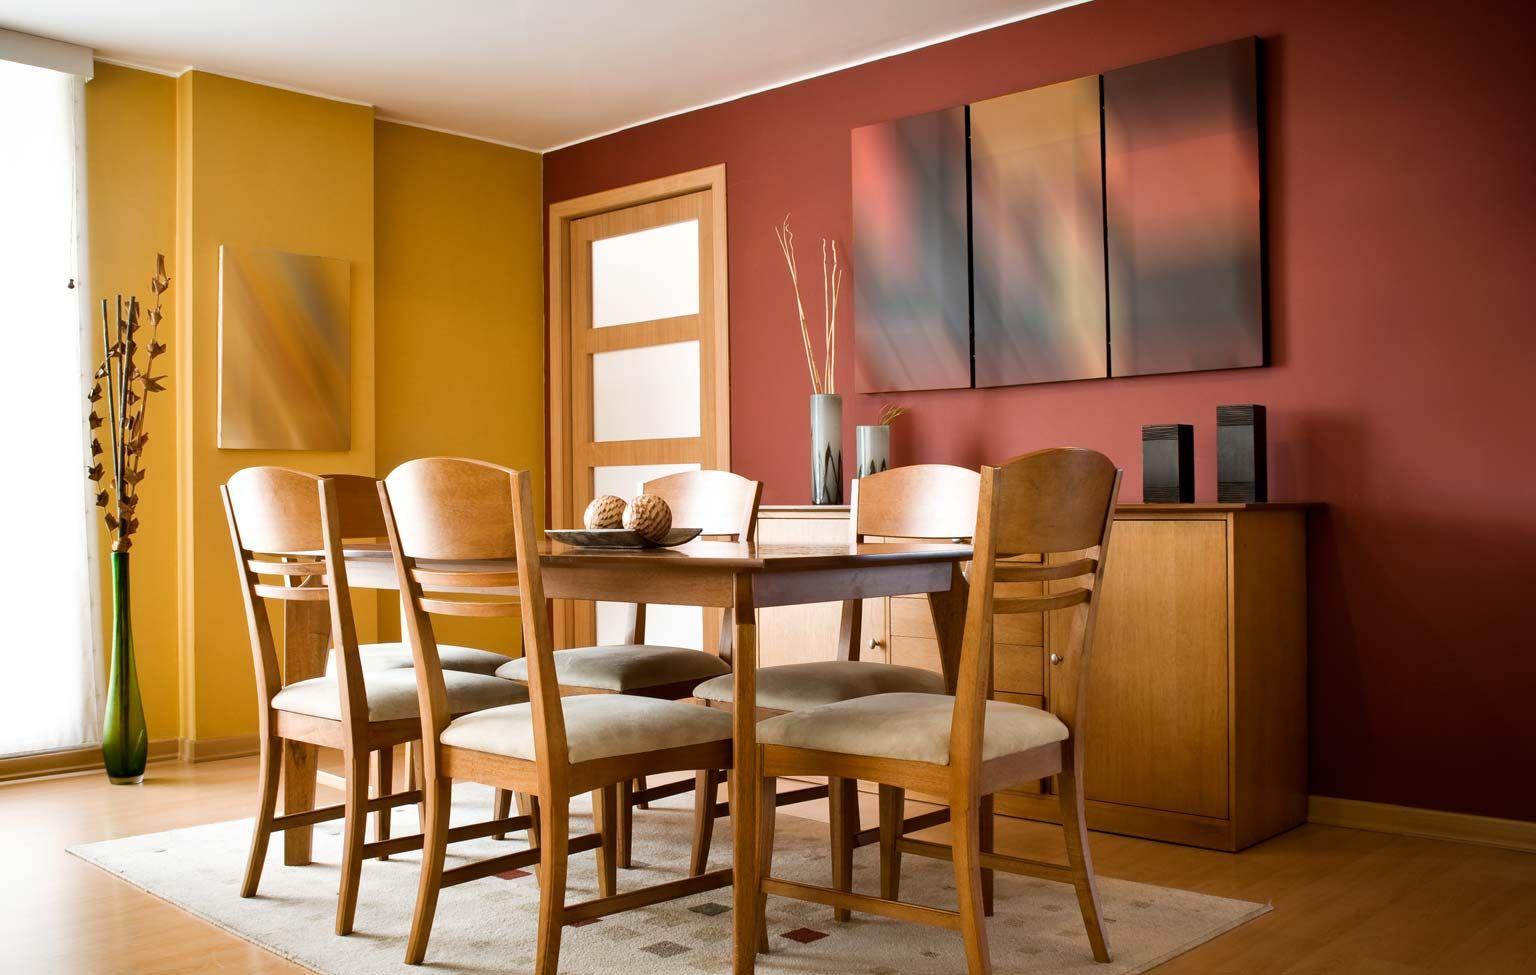 pin by quenchome on dining room pinterest dining room paint rh pinterest com best wall color for small dining room best wall color for small dining room